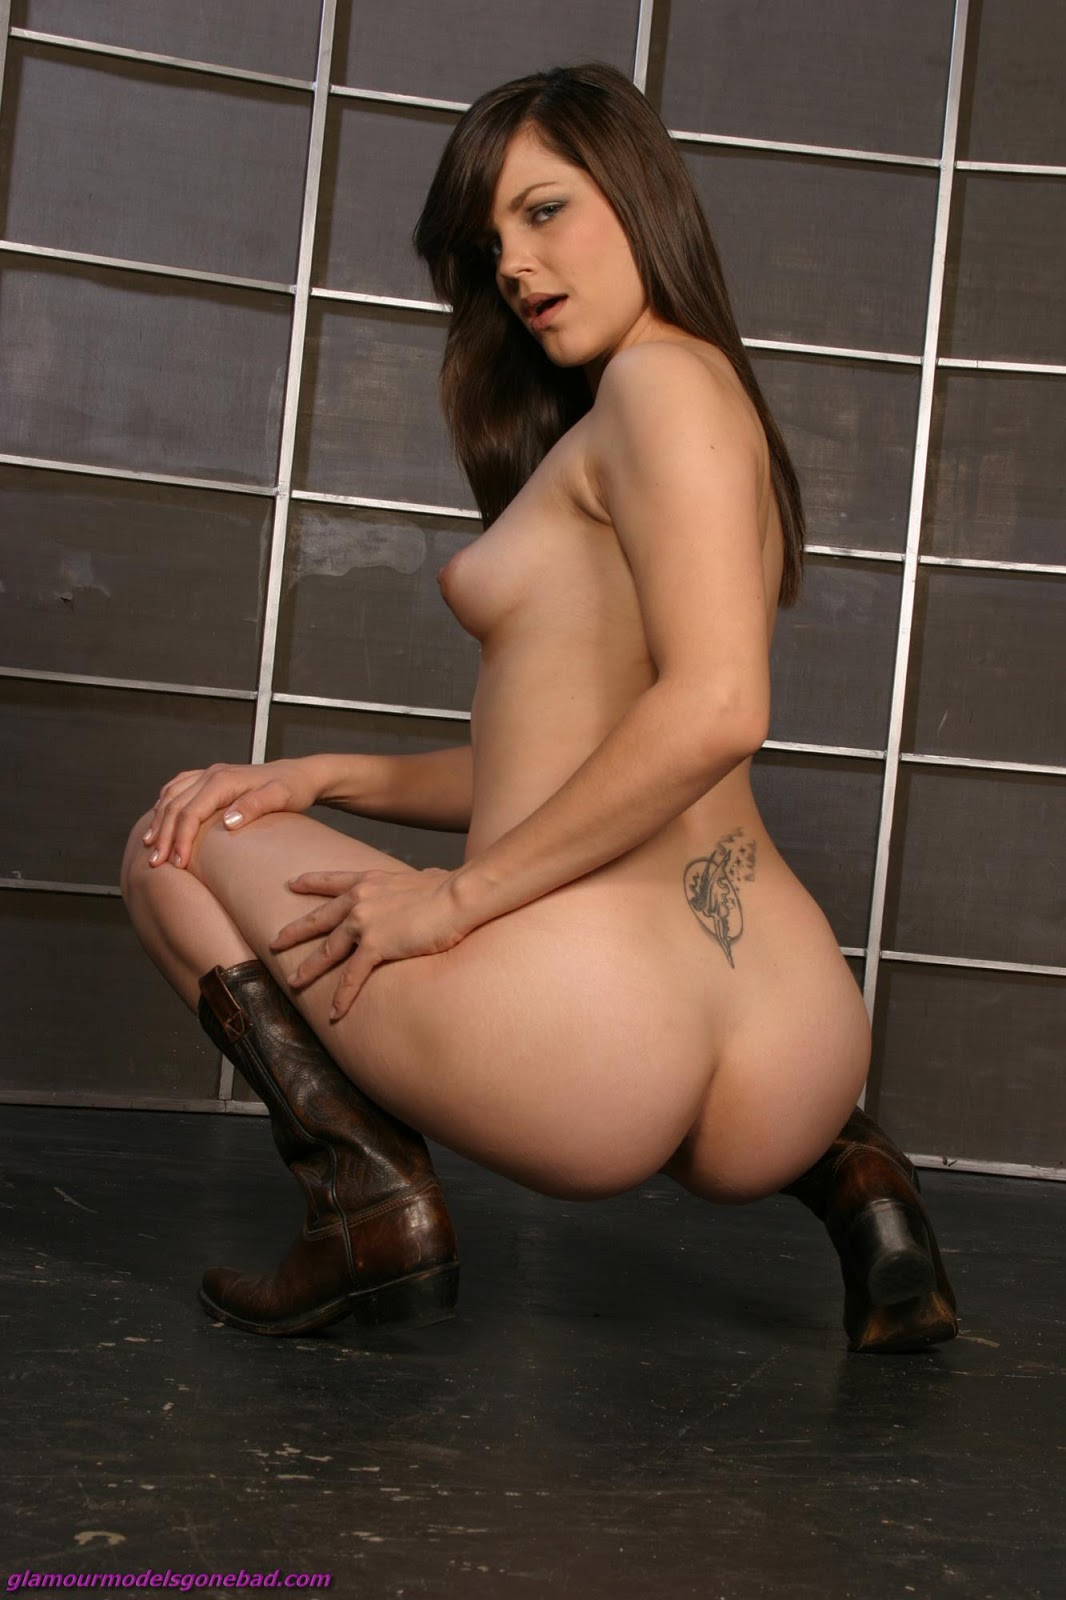 jerry springer nude pics